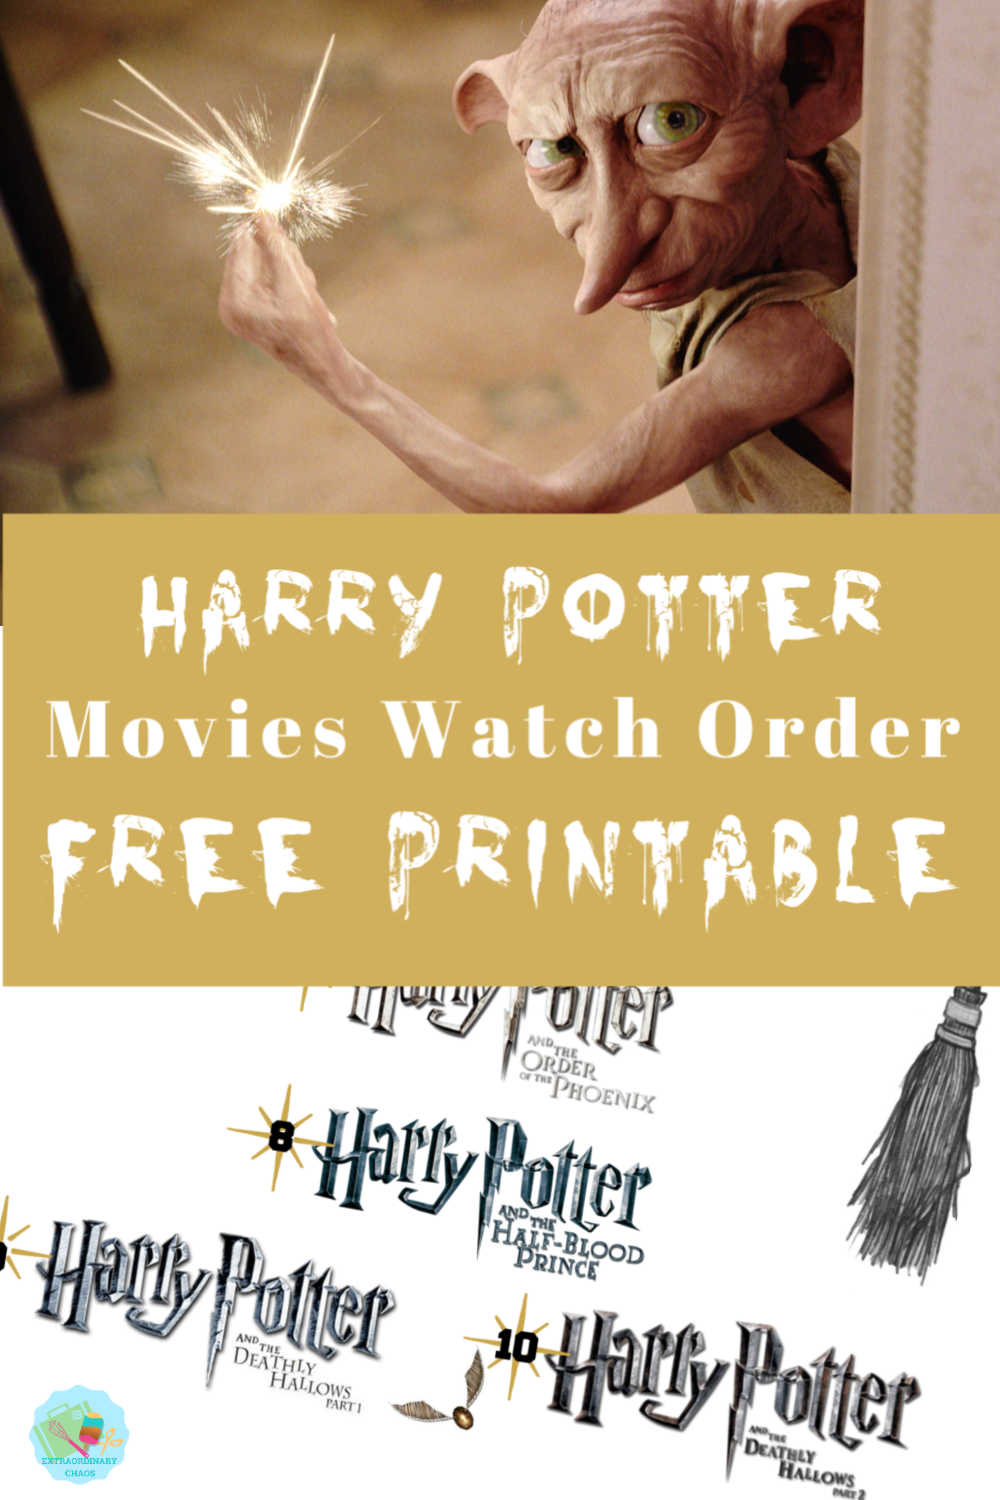 Harry Potter Free Printable Movies Watch Order